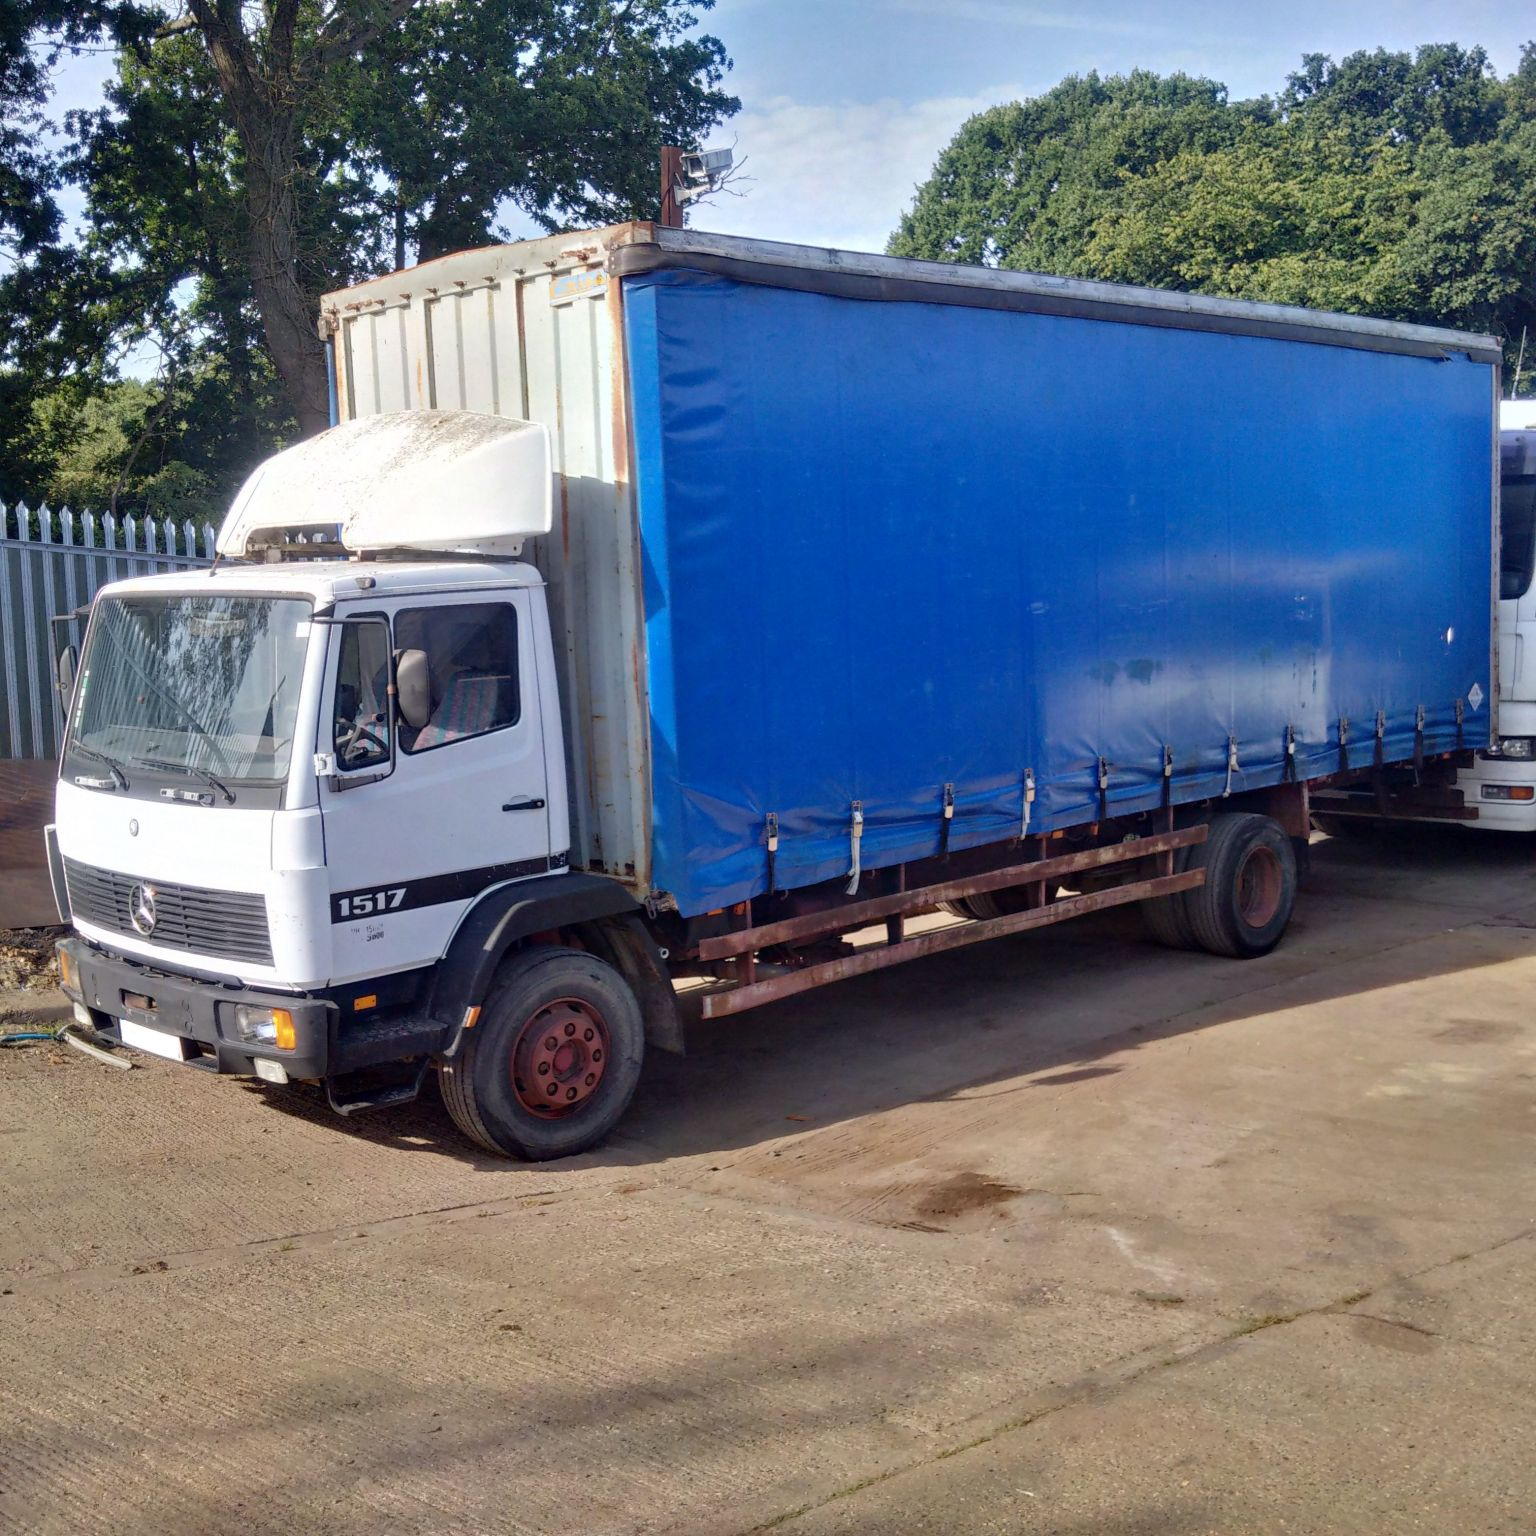 Left hand drive Mercedes Benz 1517 15 Ton curtainsider.